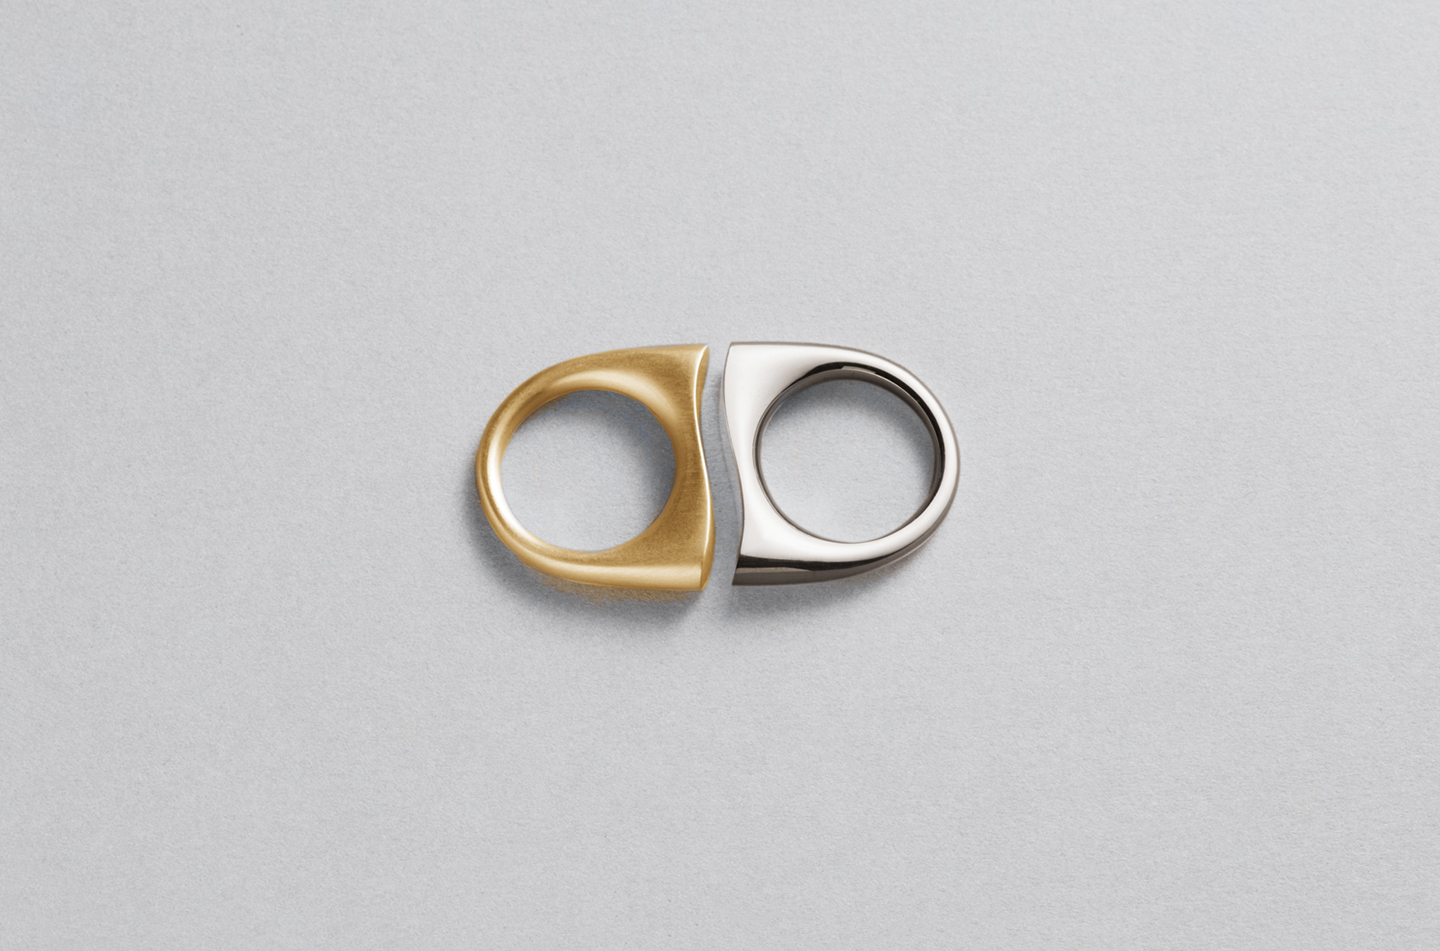 Love Distance Rings in Yellow and White Gold. Image: Courtesy of J Rabun